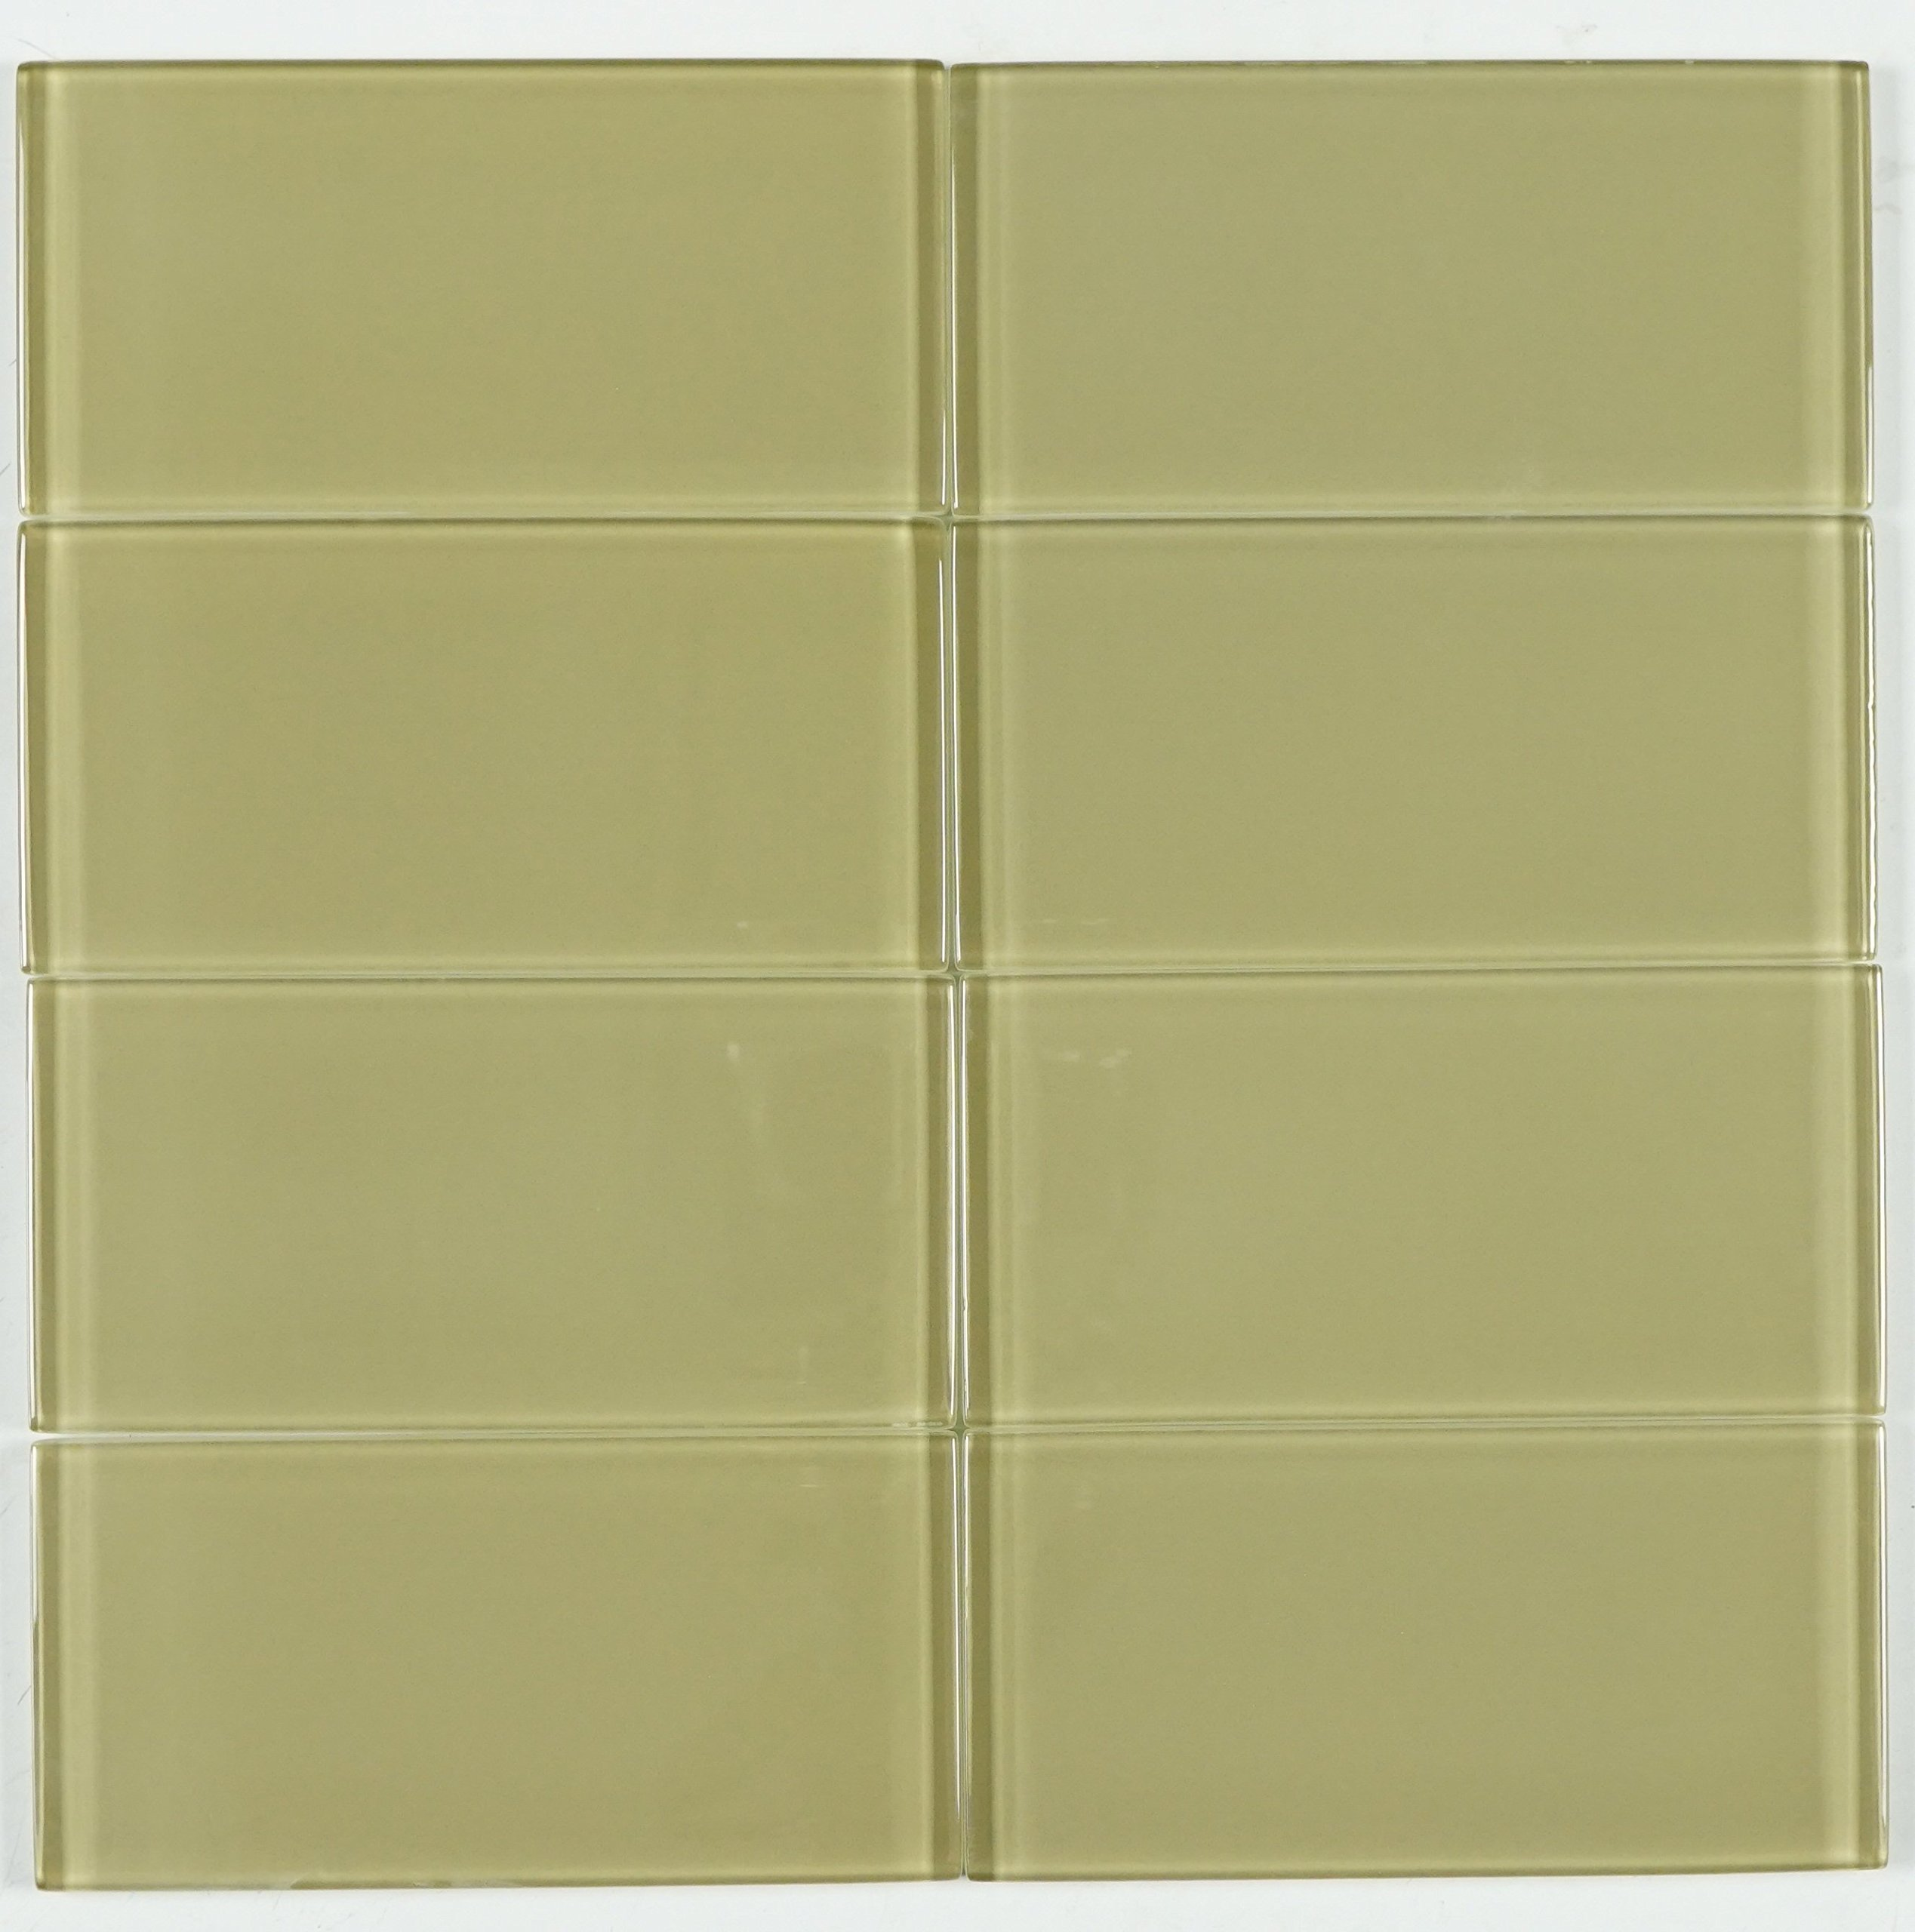 Brass Elegans 29FT-AB Classique Solid Metal 4-Inch X 4-Inch Accent Tile Durable Antique Brass Finish